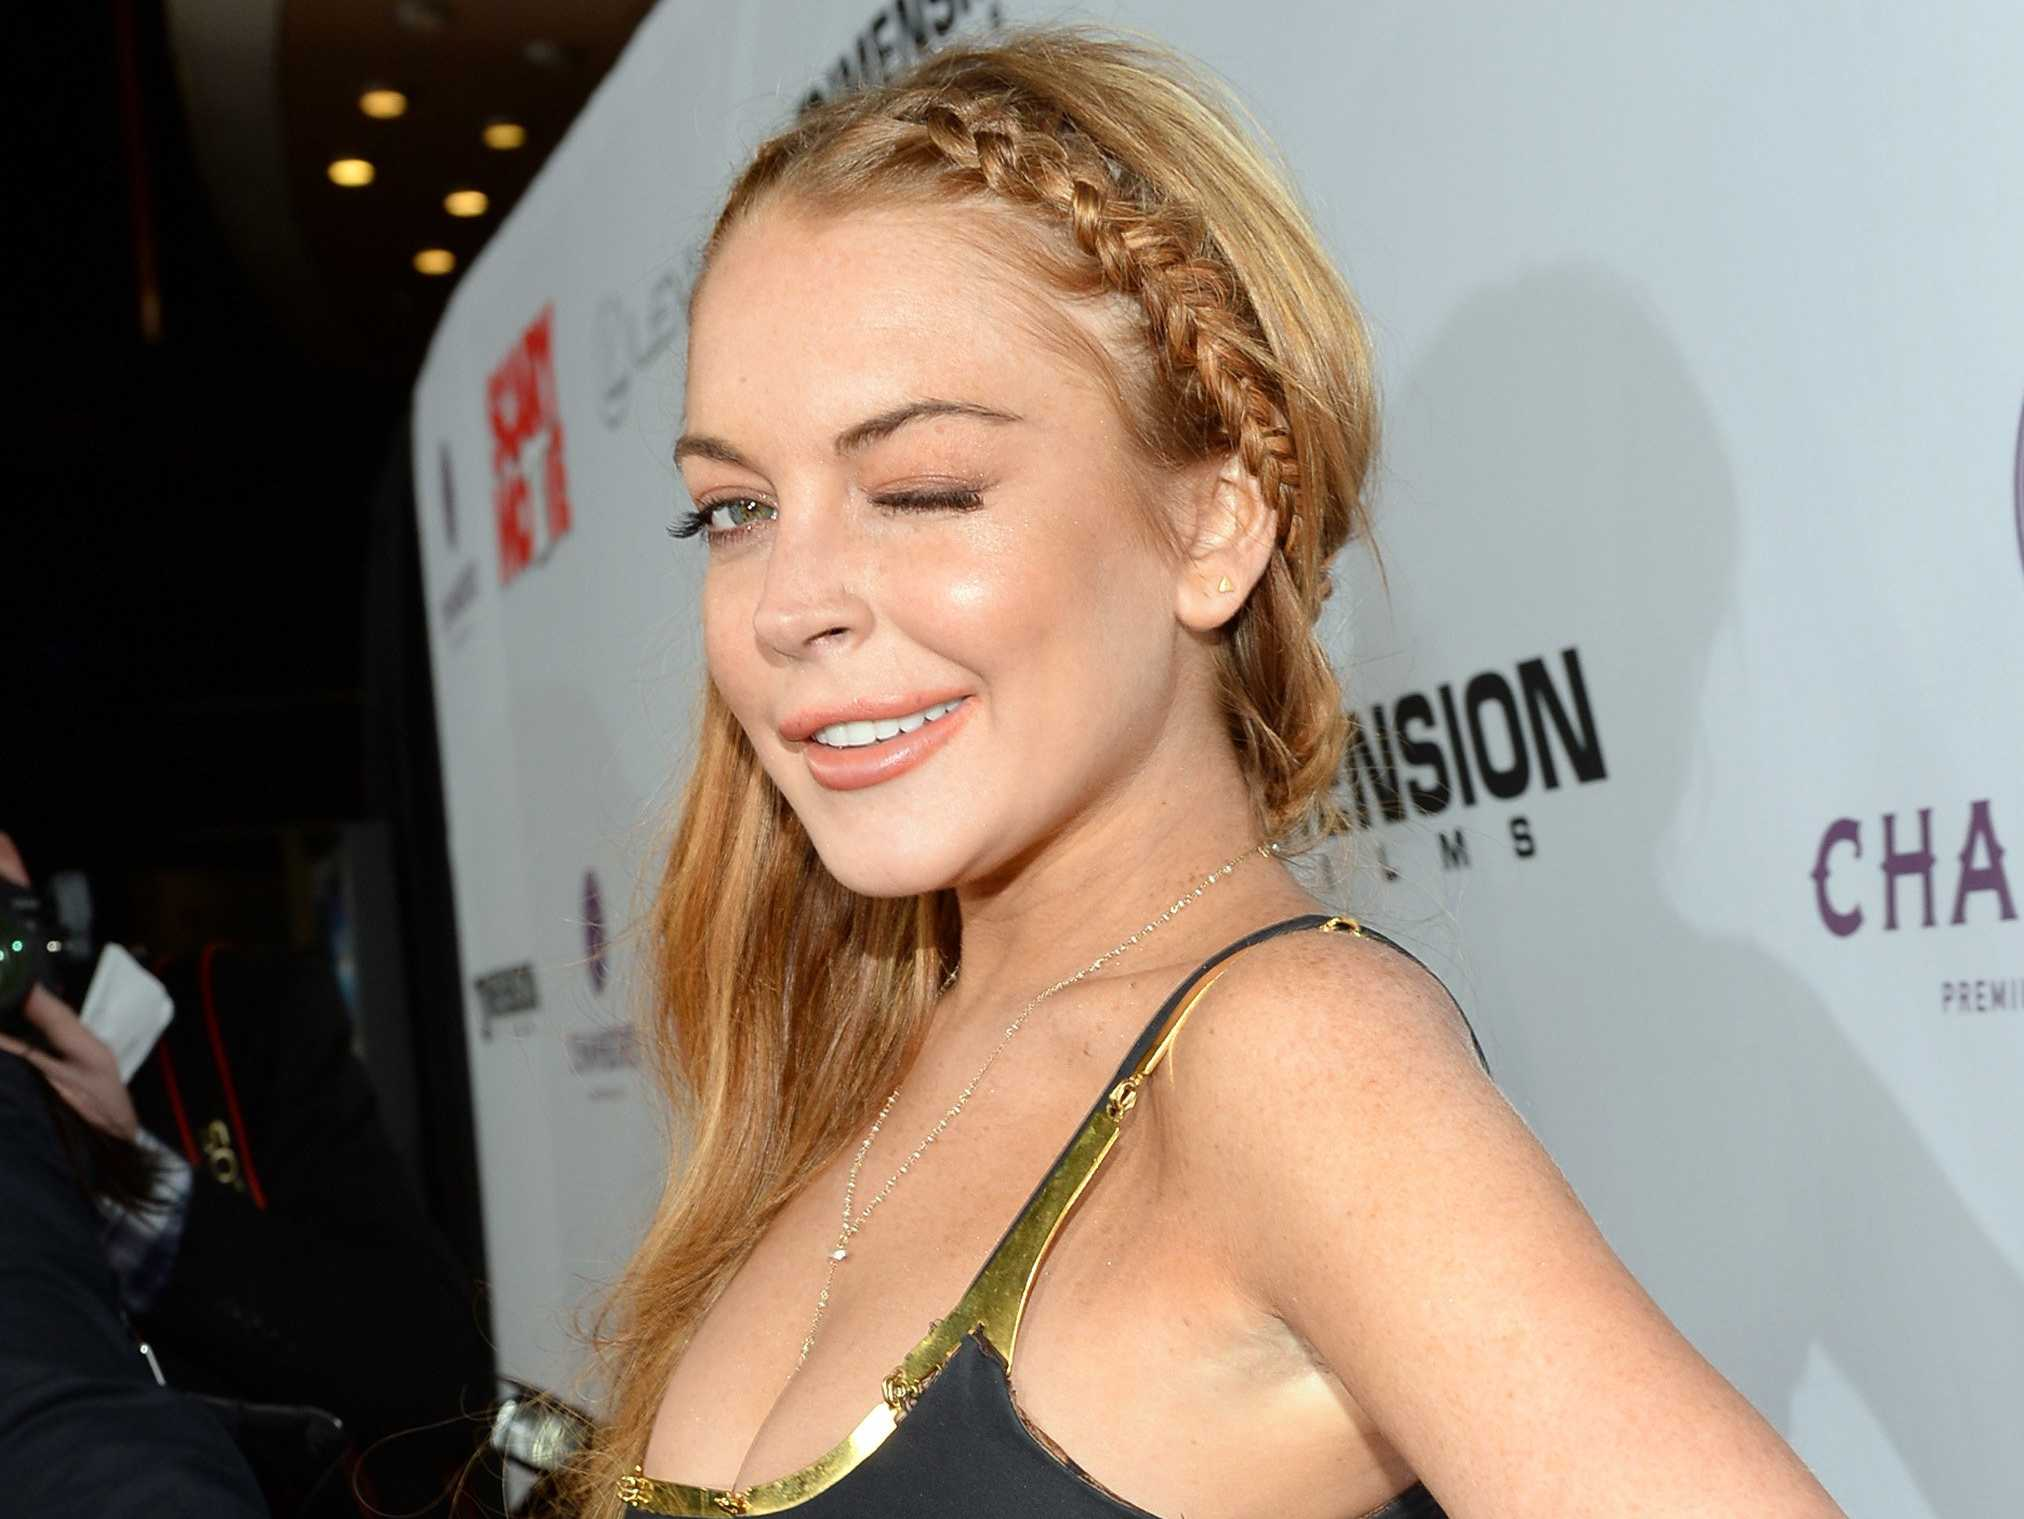 5 FACTS YOU NEVER KNEW ABOUT LINDSAY LOHAN